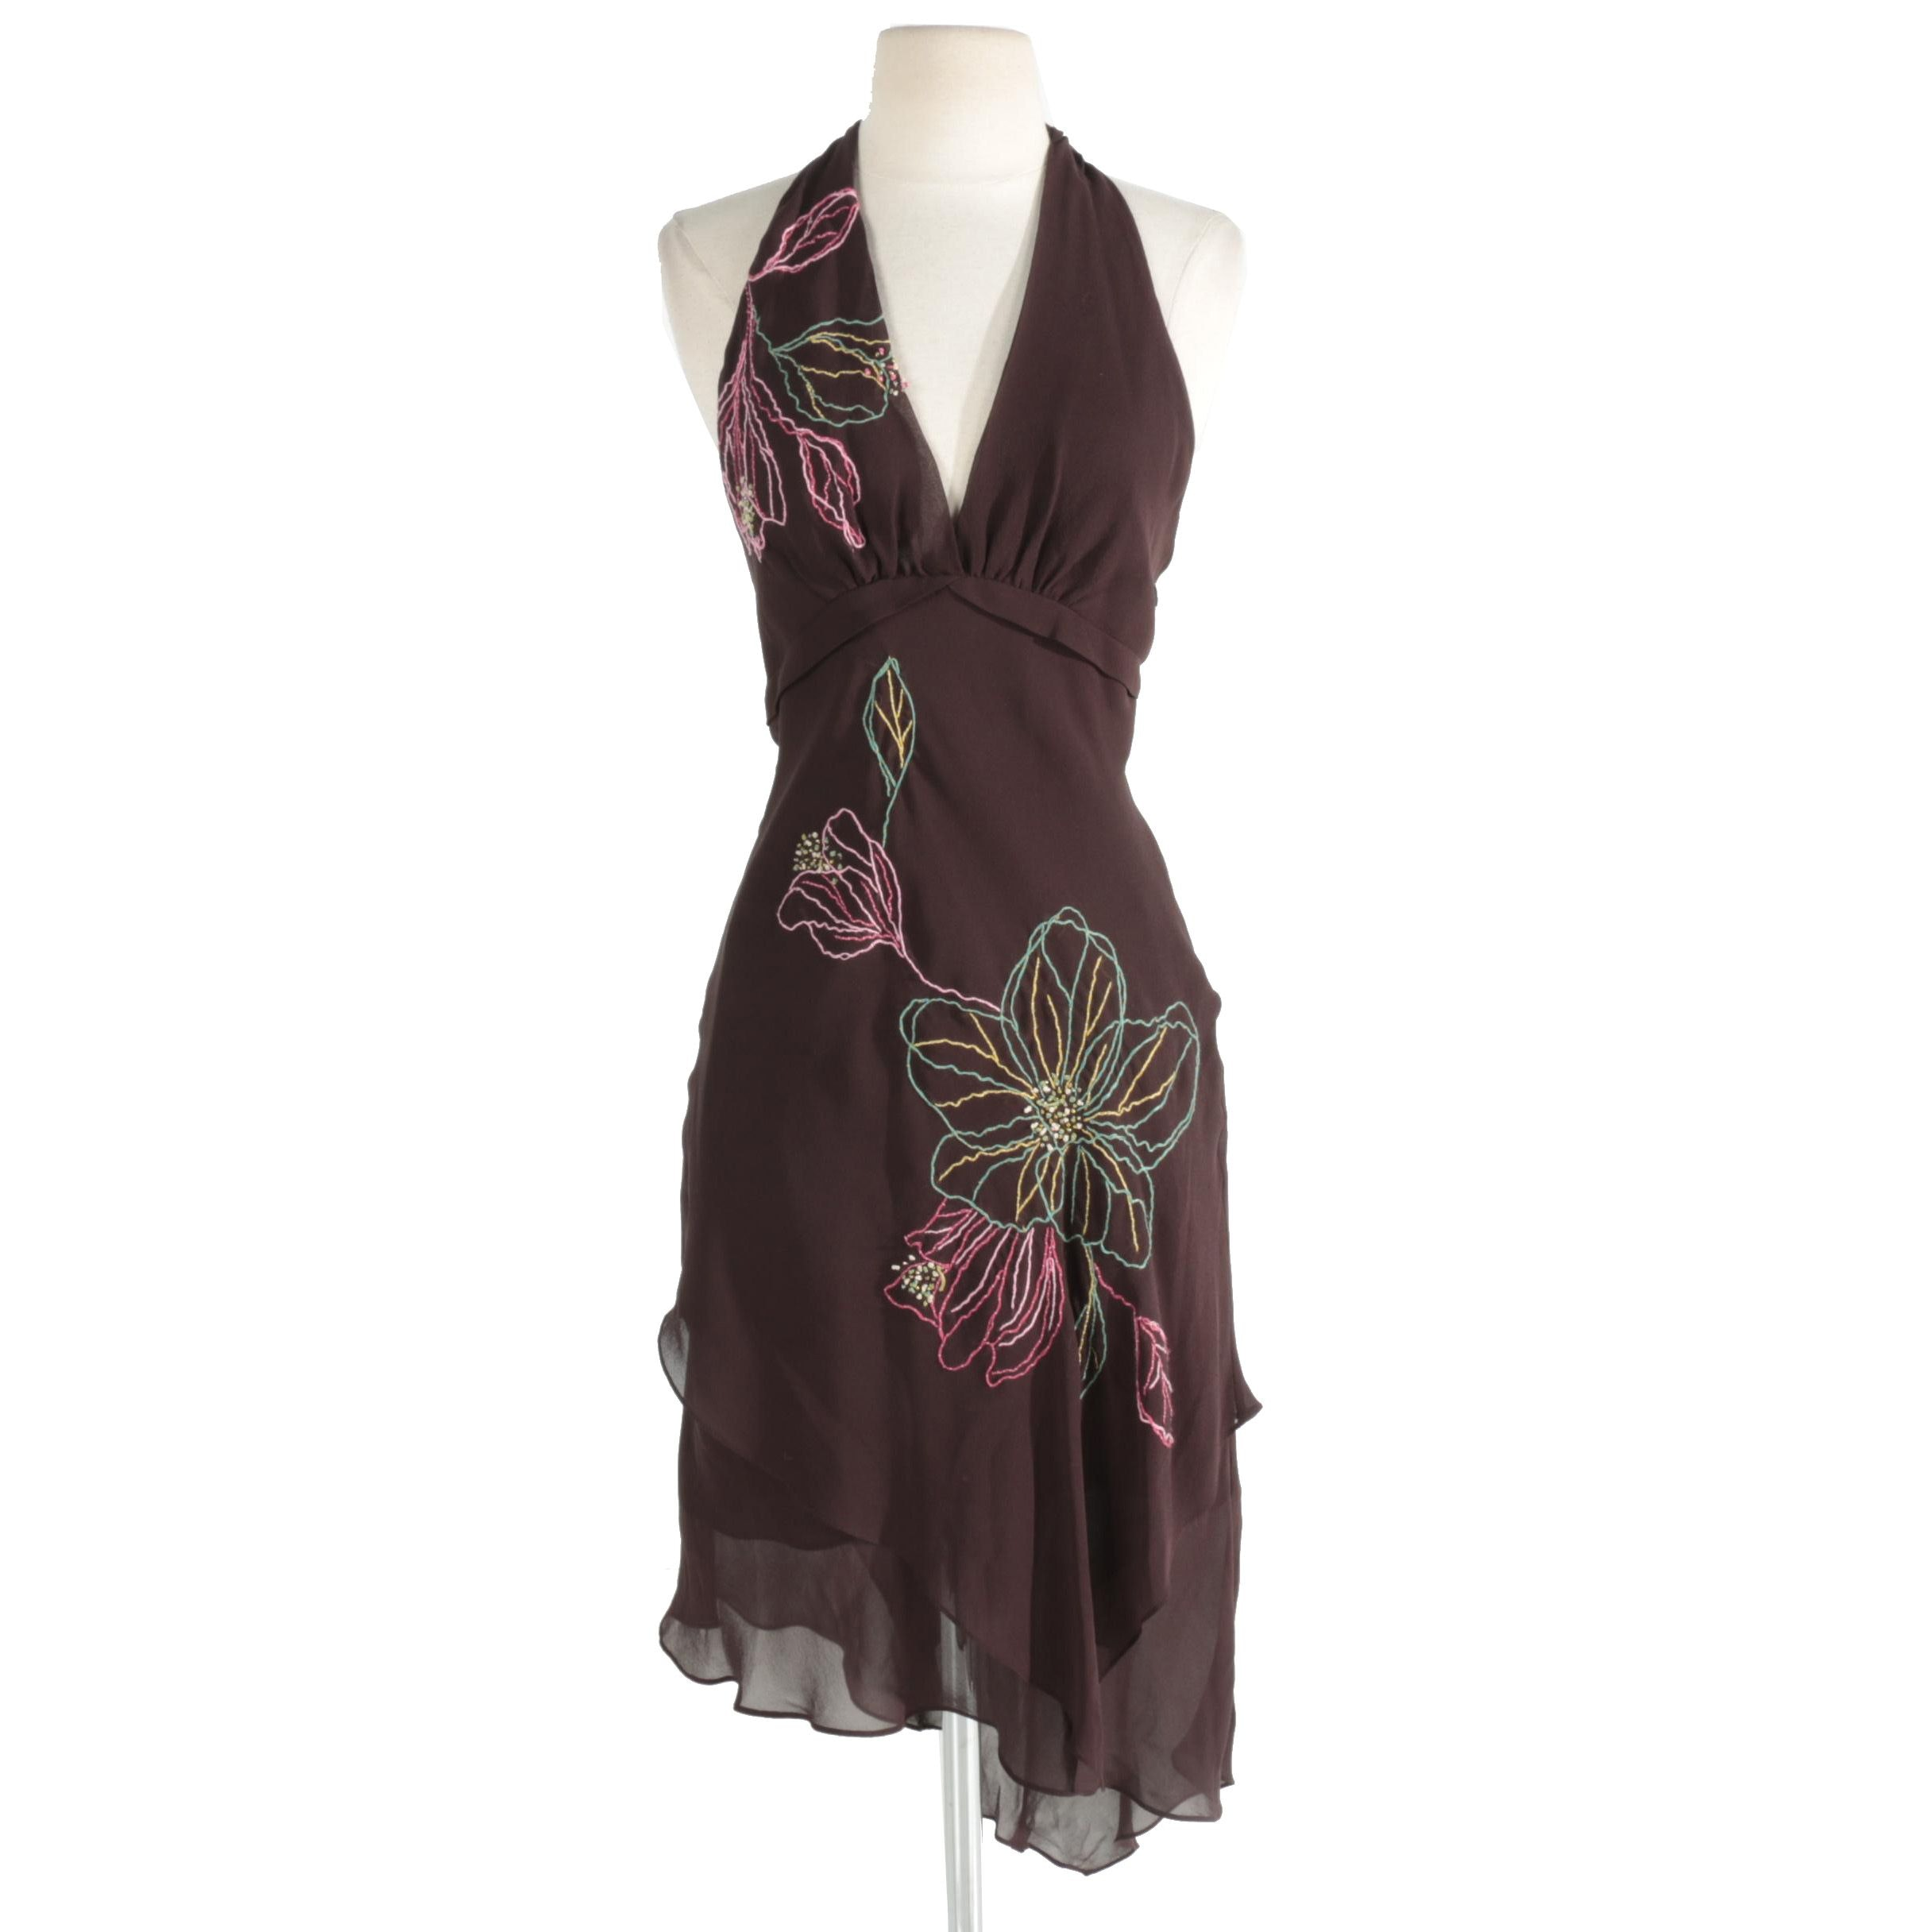 BCBG Max Azria Brown Embroidered Halter Dress